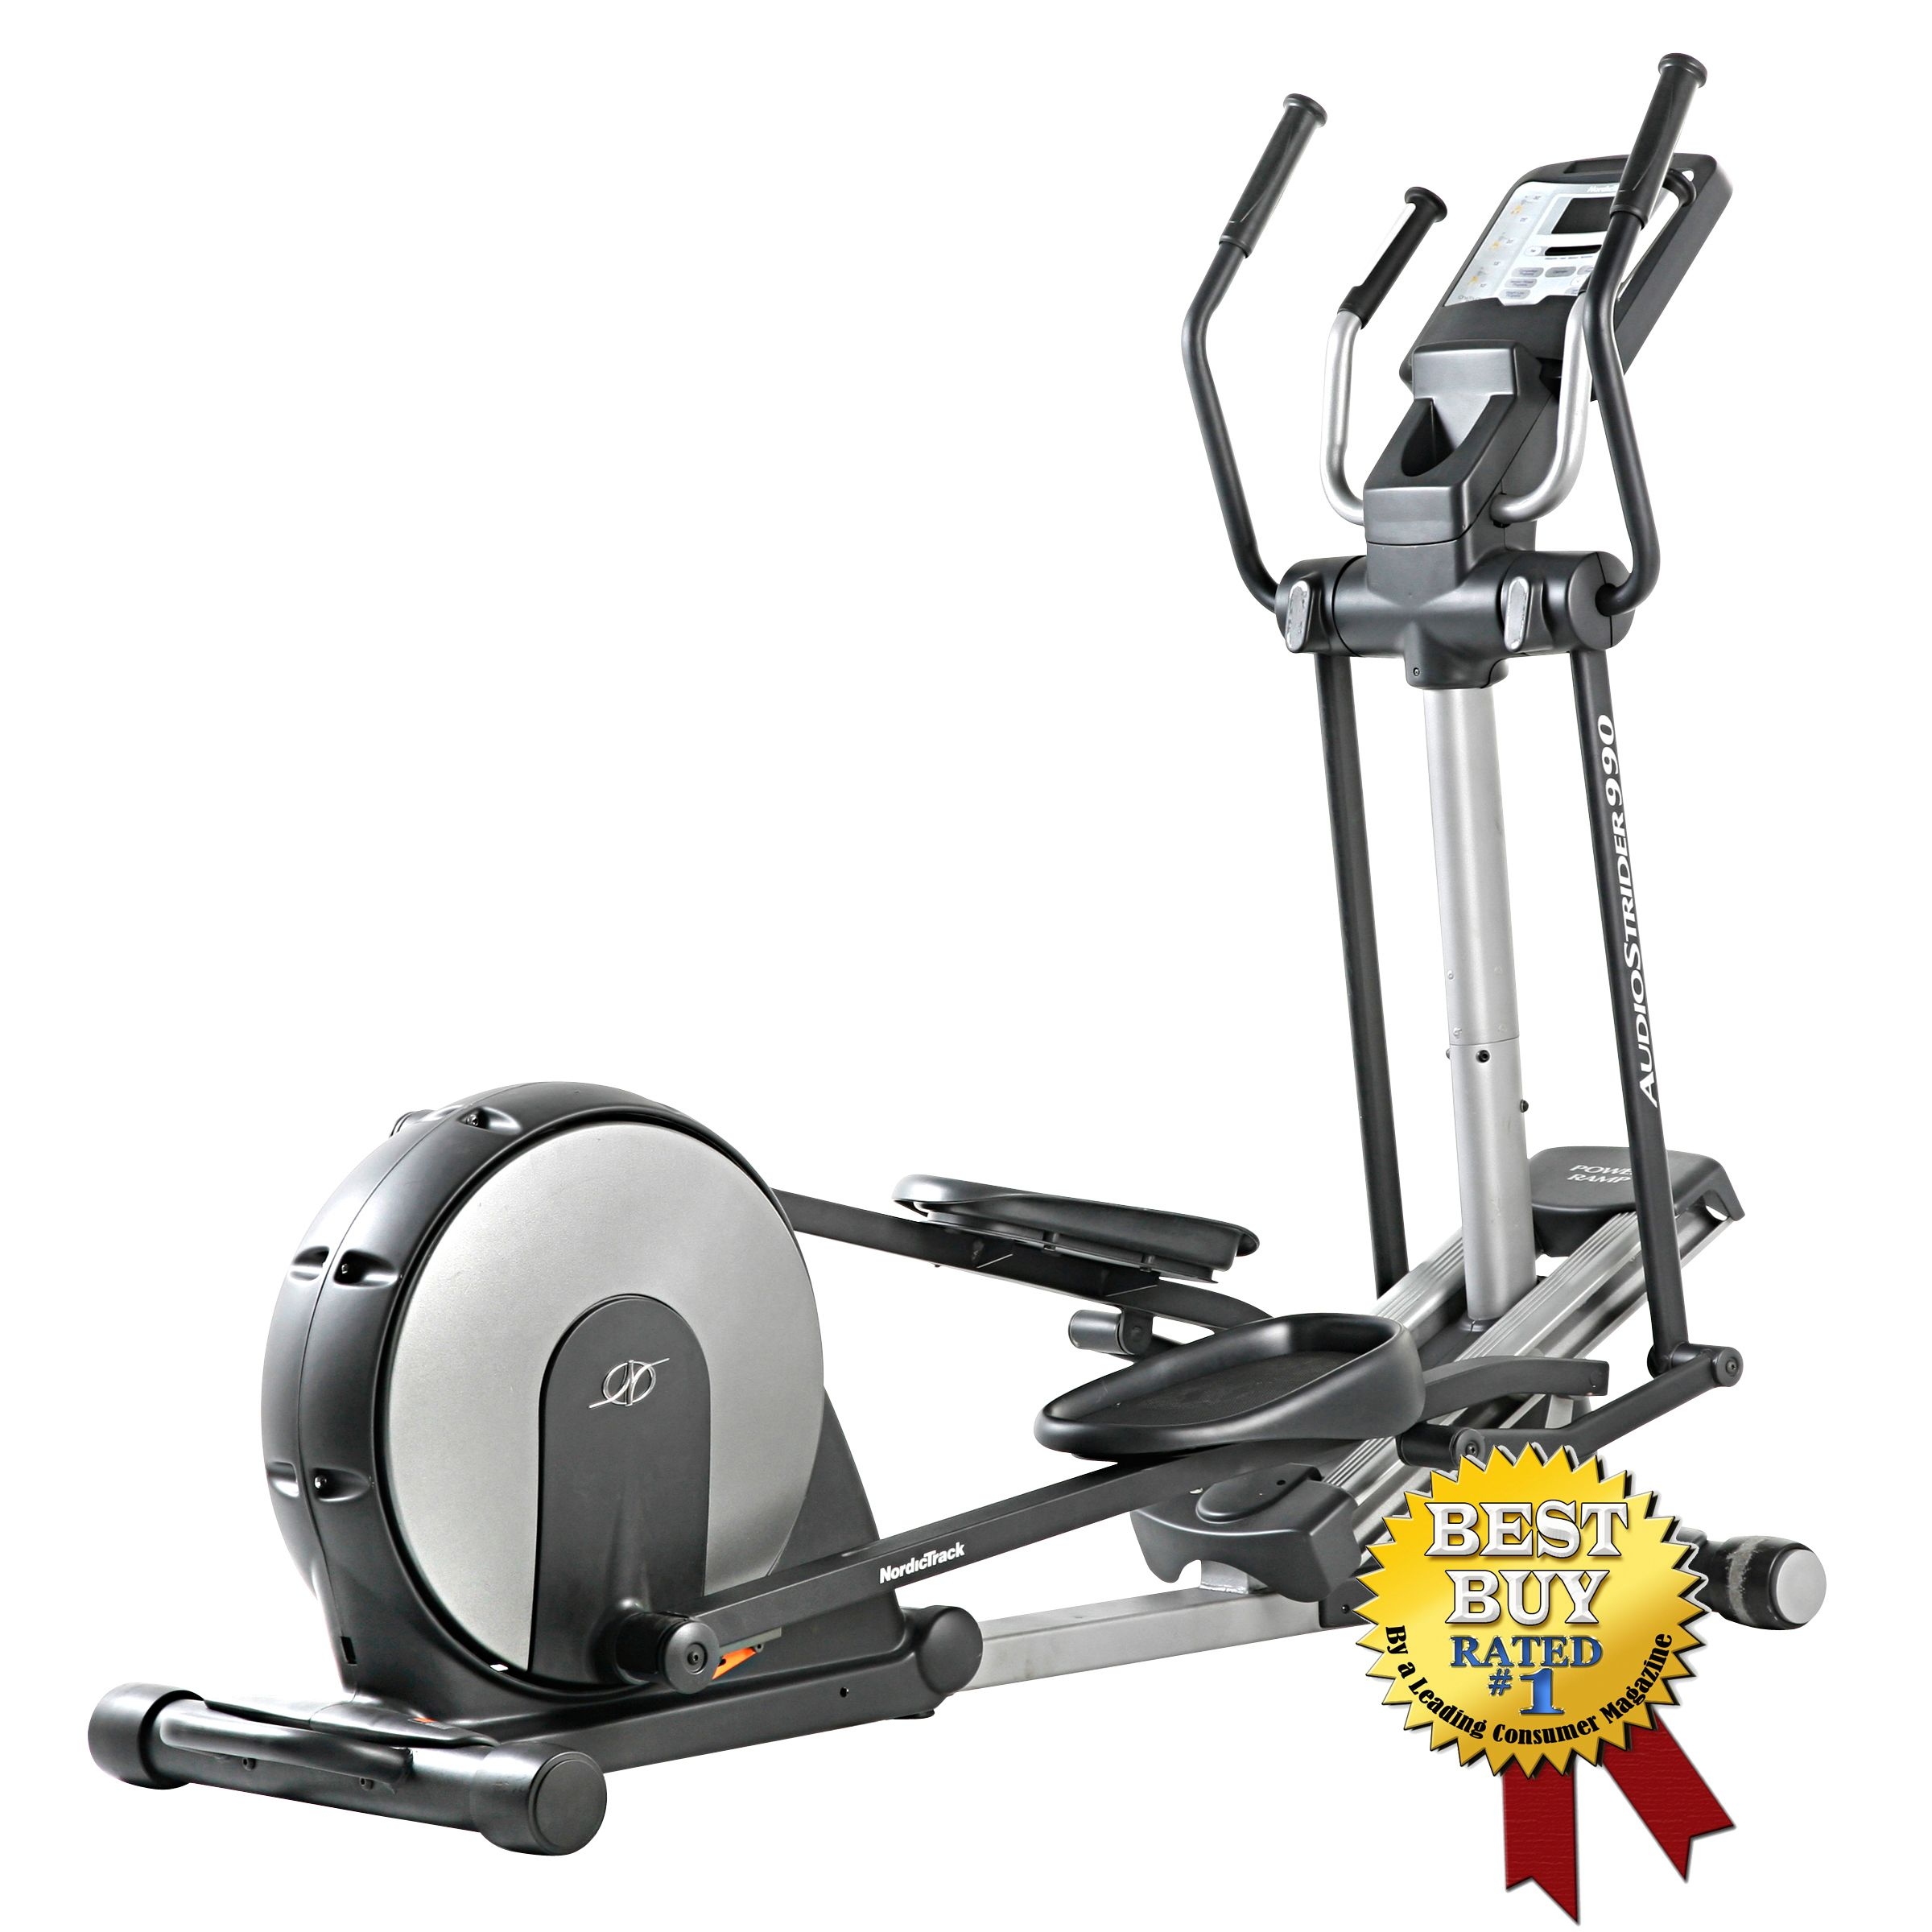 NordicTrack Audiostrider 990 Elliptical